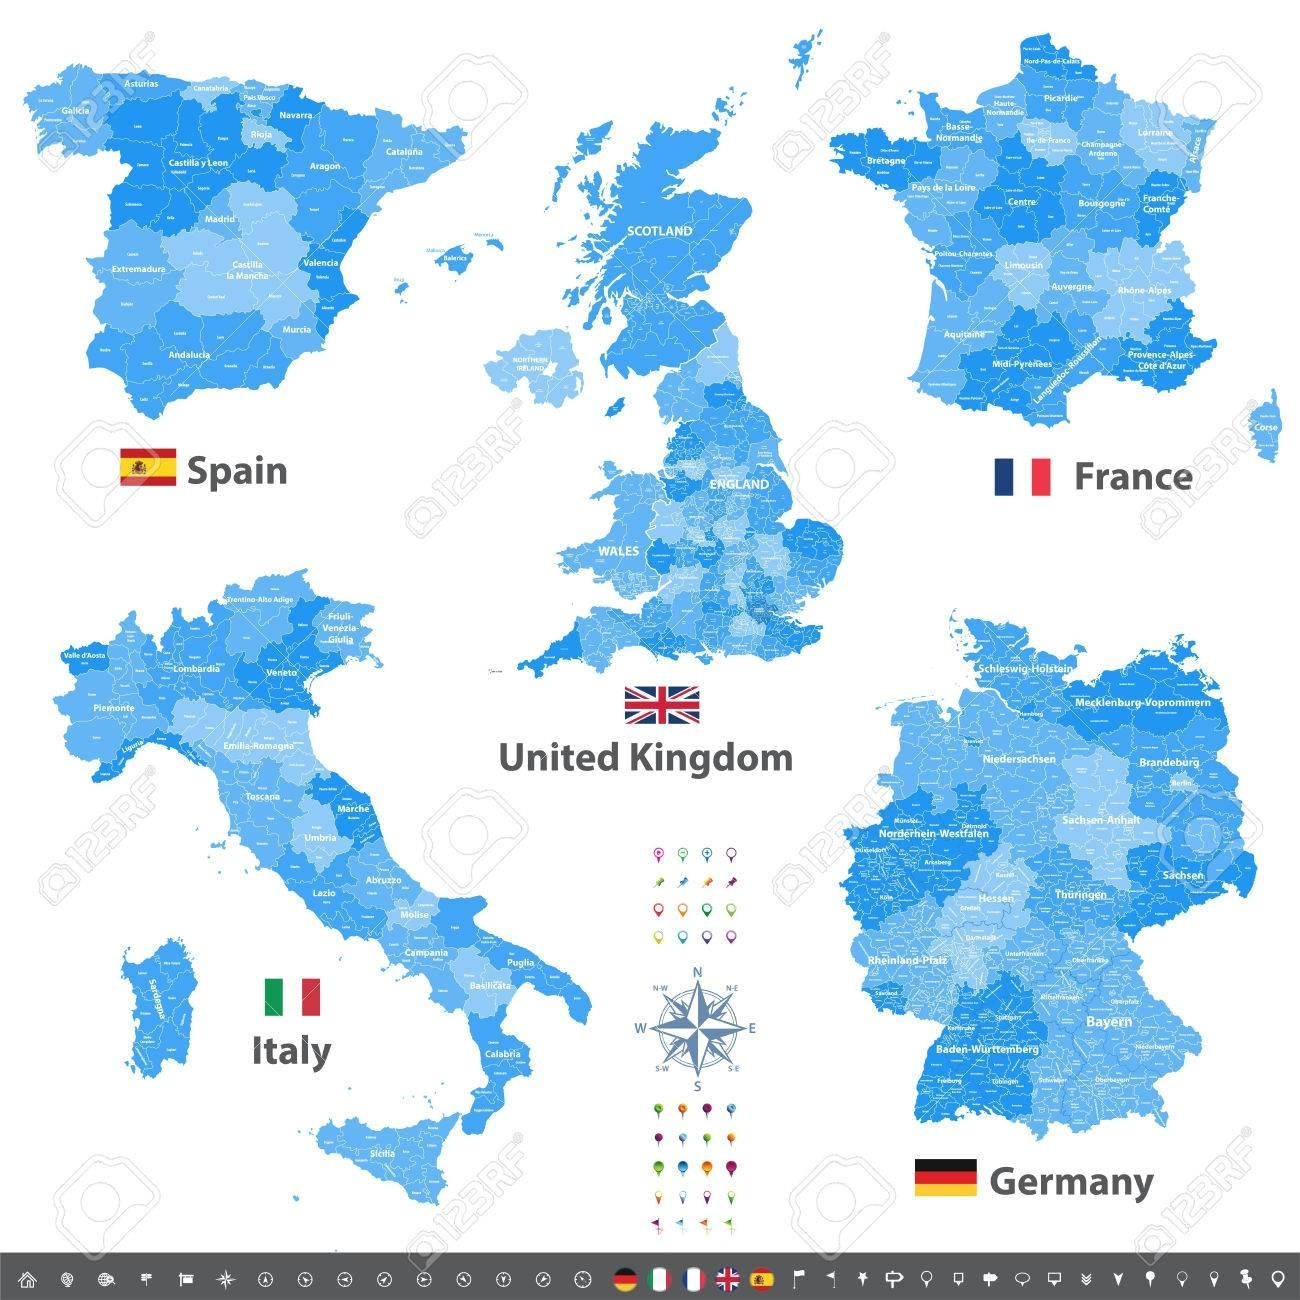 Vector Maps Of United Kingdom, Italy, Germany, France And Spain.. pertaining to Map Of Spain France And Germany